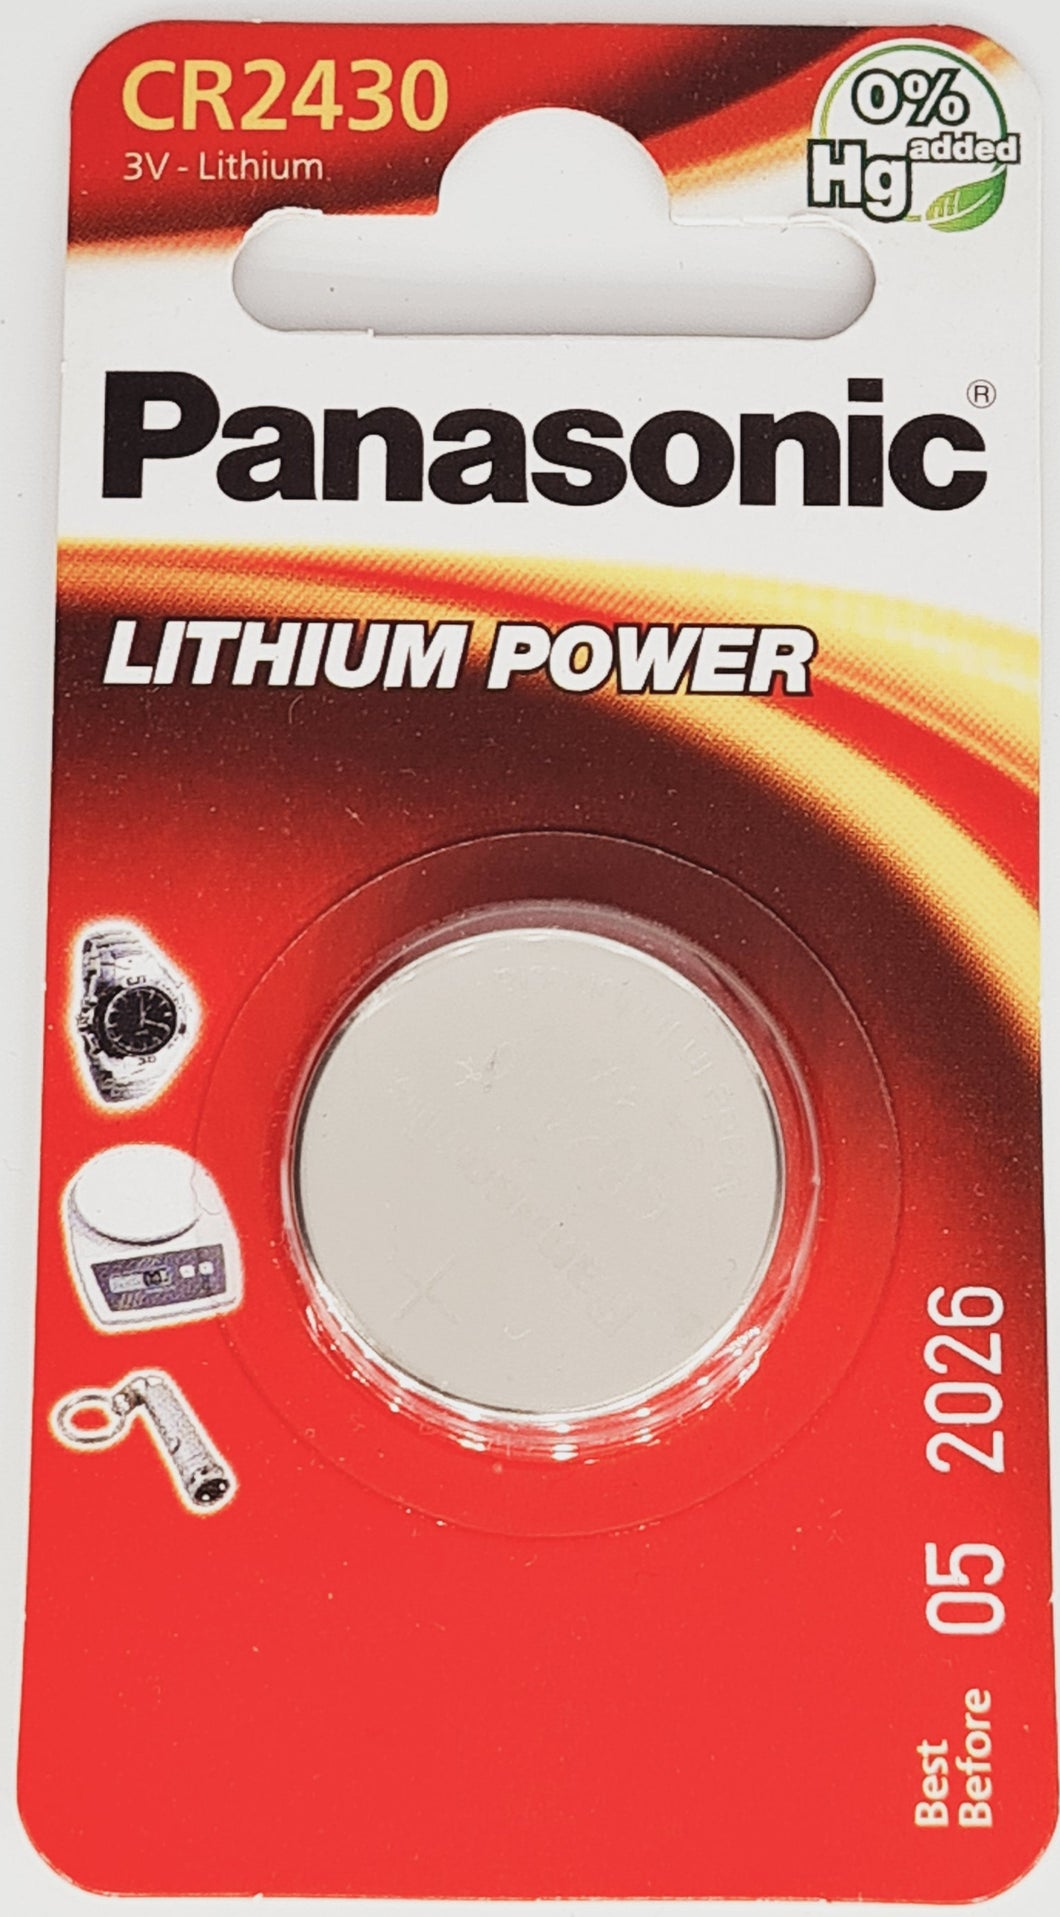 Panasonic CR2430 3V Lithium Batterie Knopfzelle 1er Pack Blister